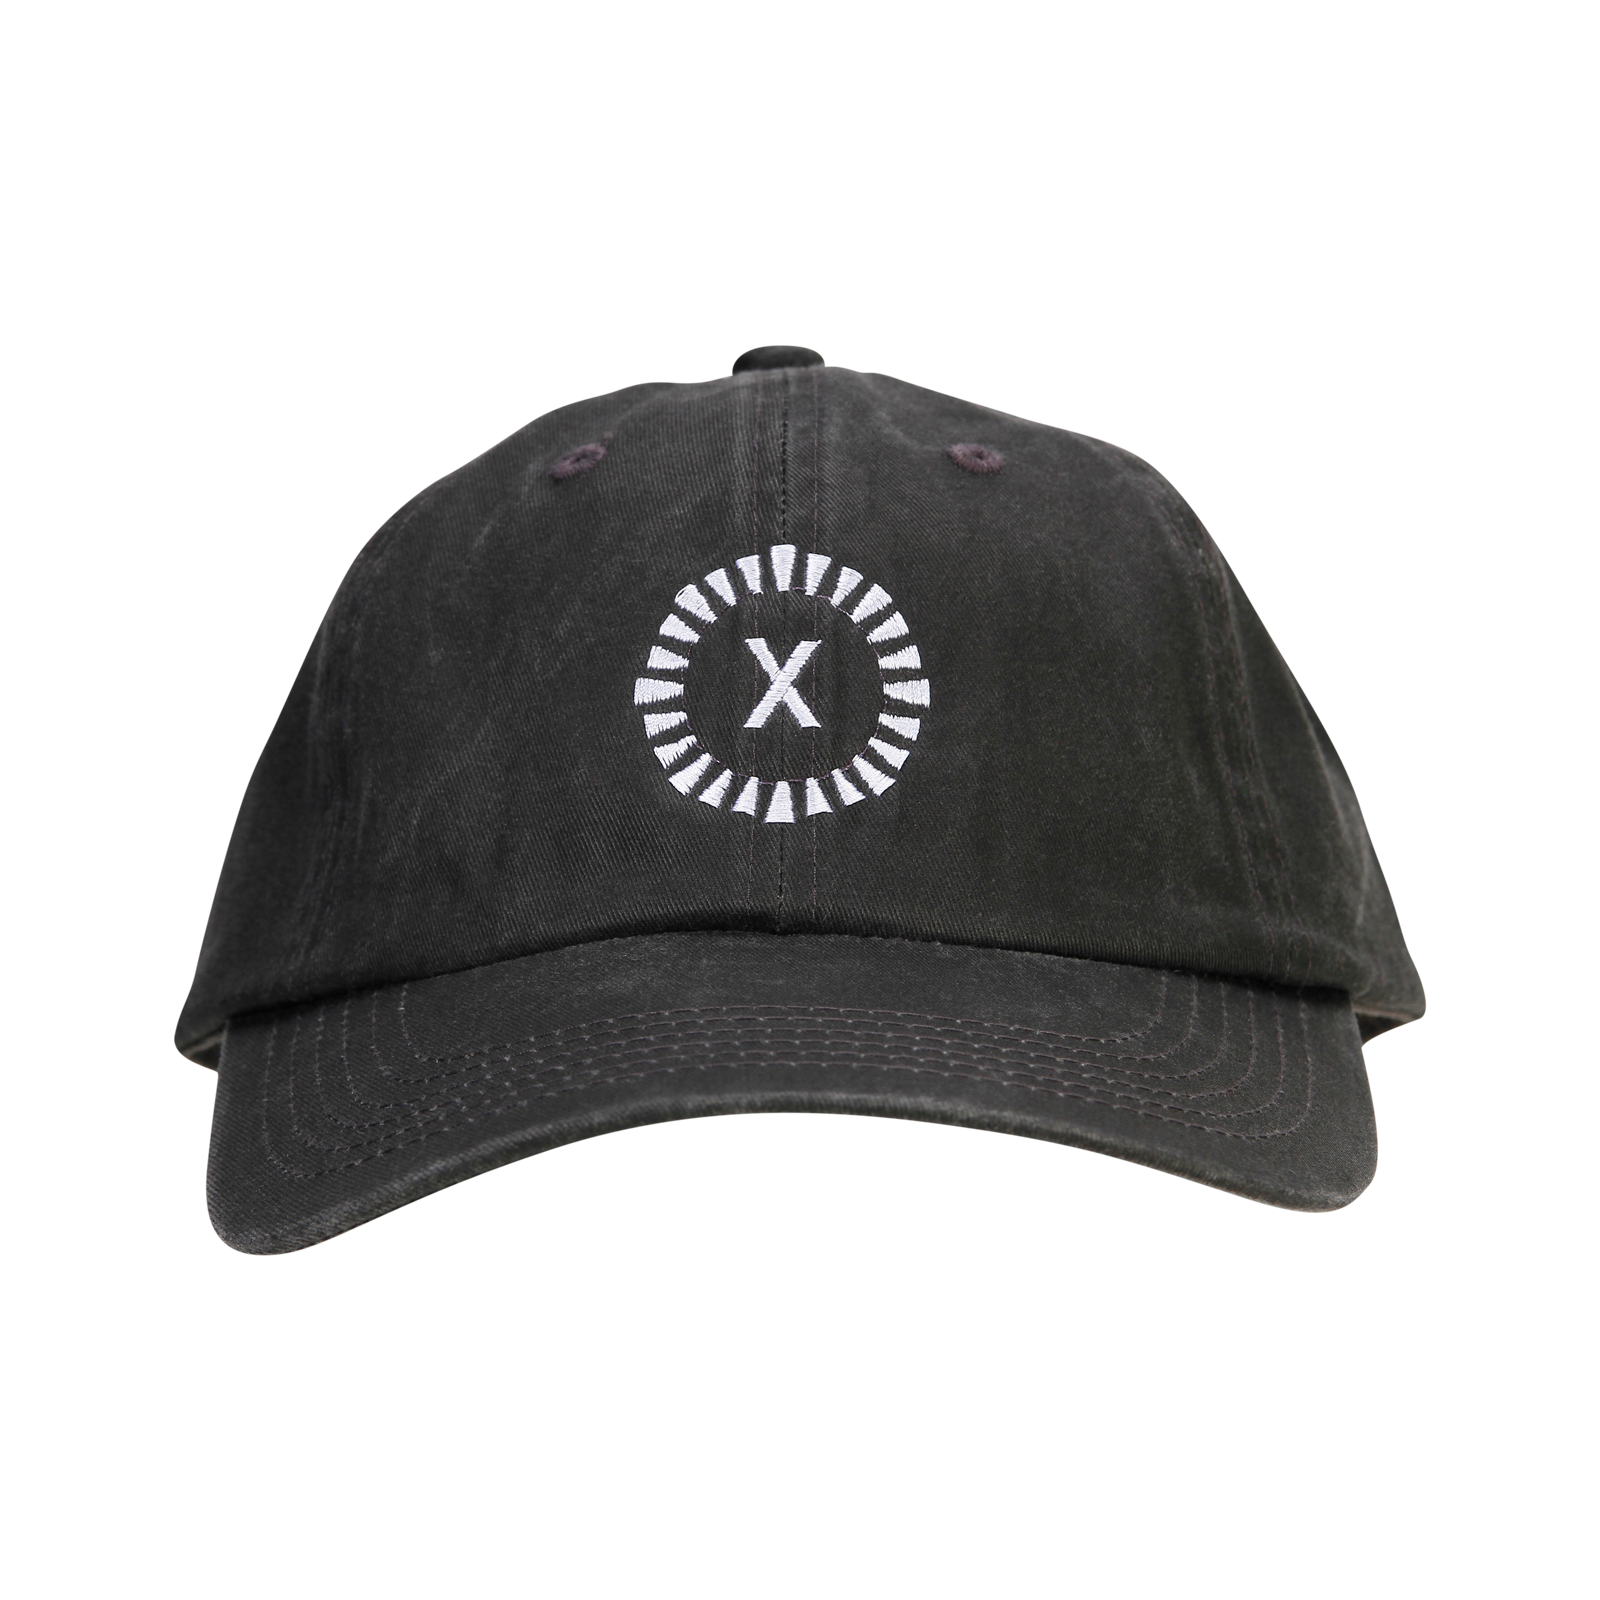 X Year Anniversary Garment Washed Dad Cap - Black